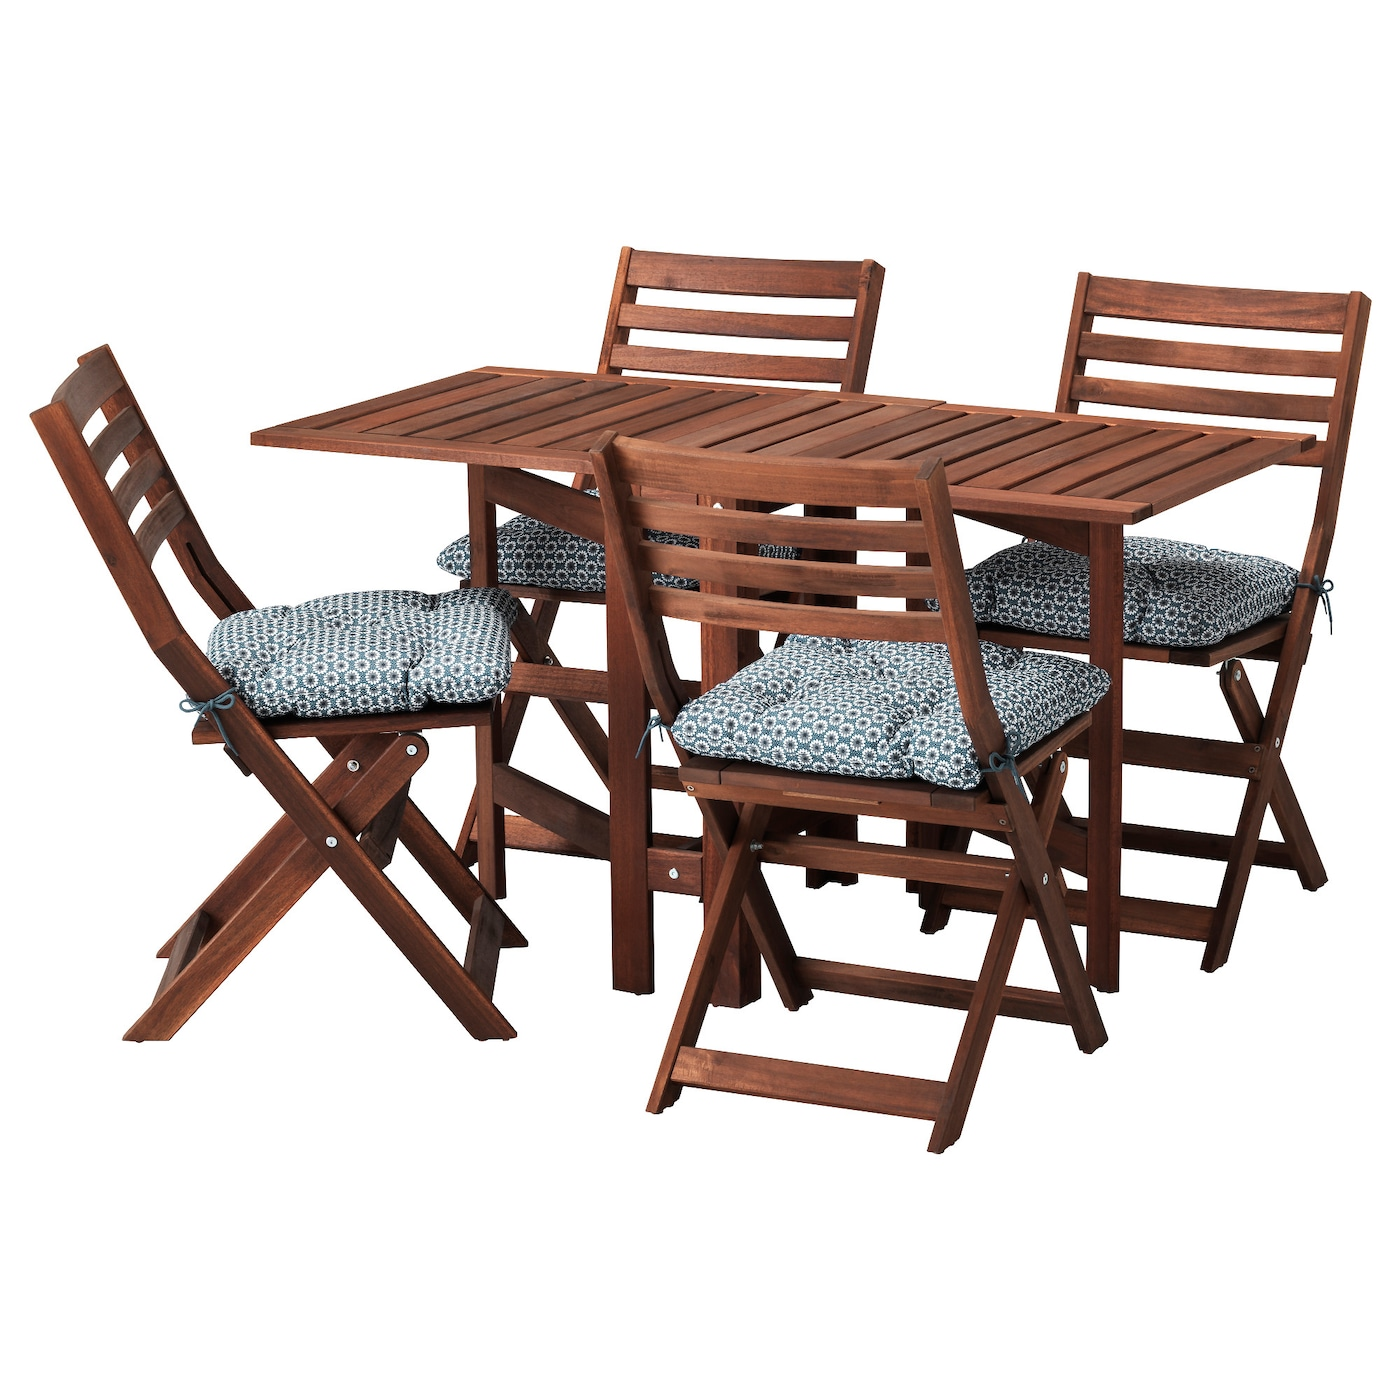 Garden Tables & Chairs Garden Furniture Sets